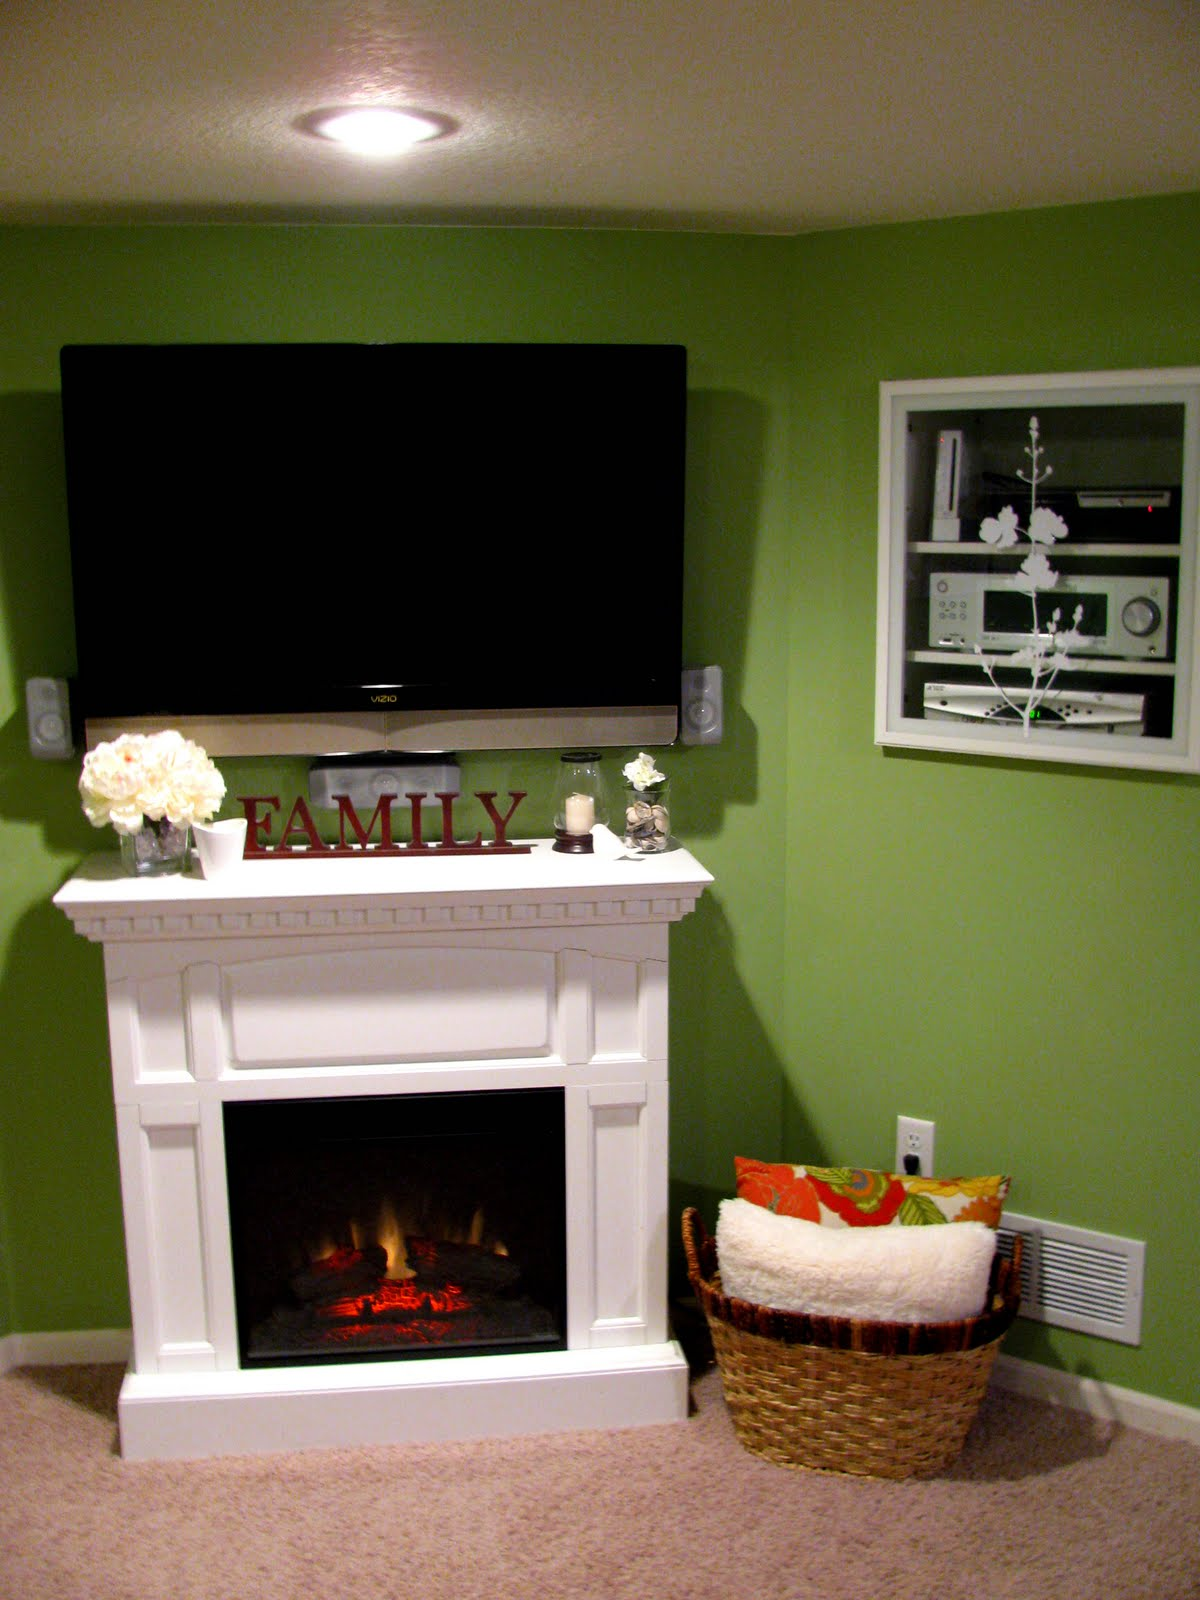 Mantel Tv Ideas On Pinterest Corner Fireplaces Cable Box And Electric Fireplaces